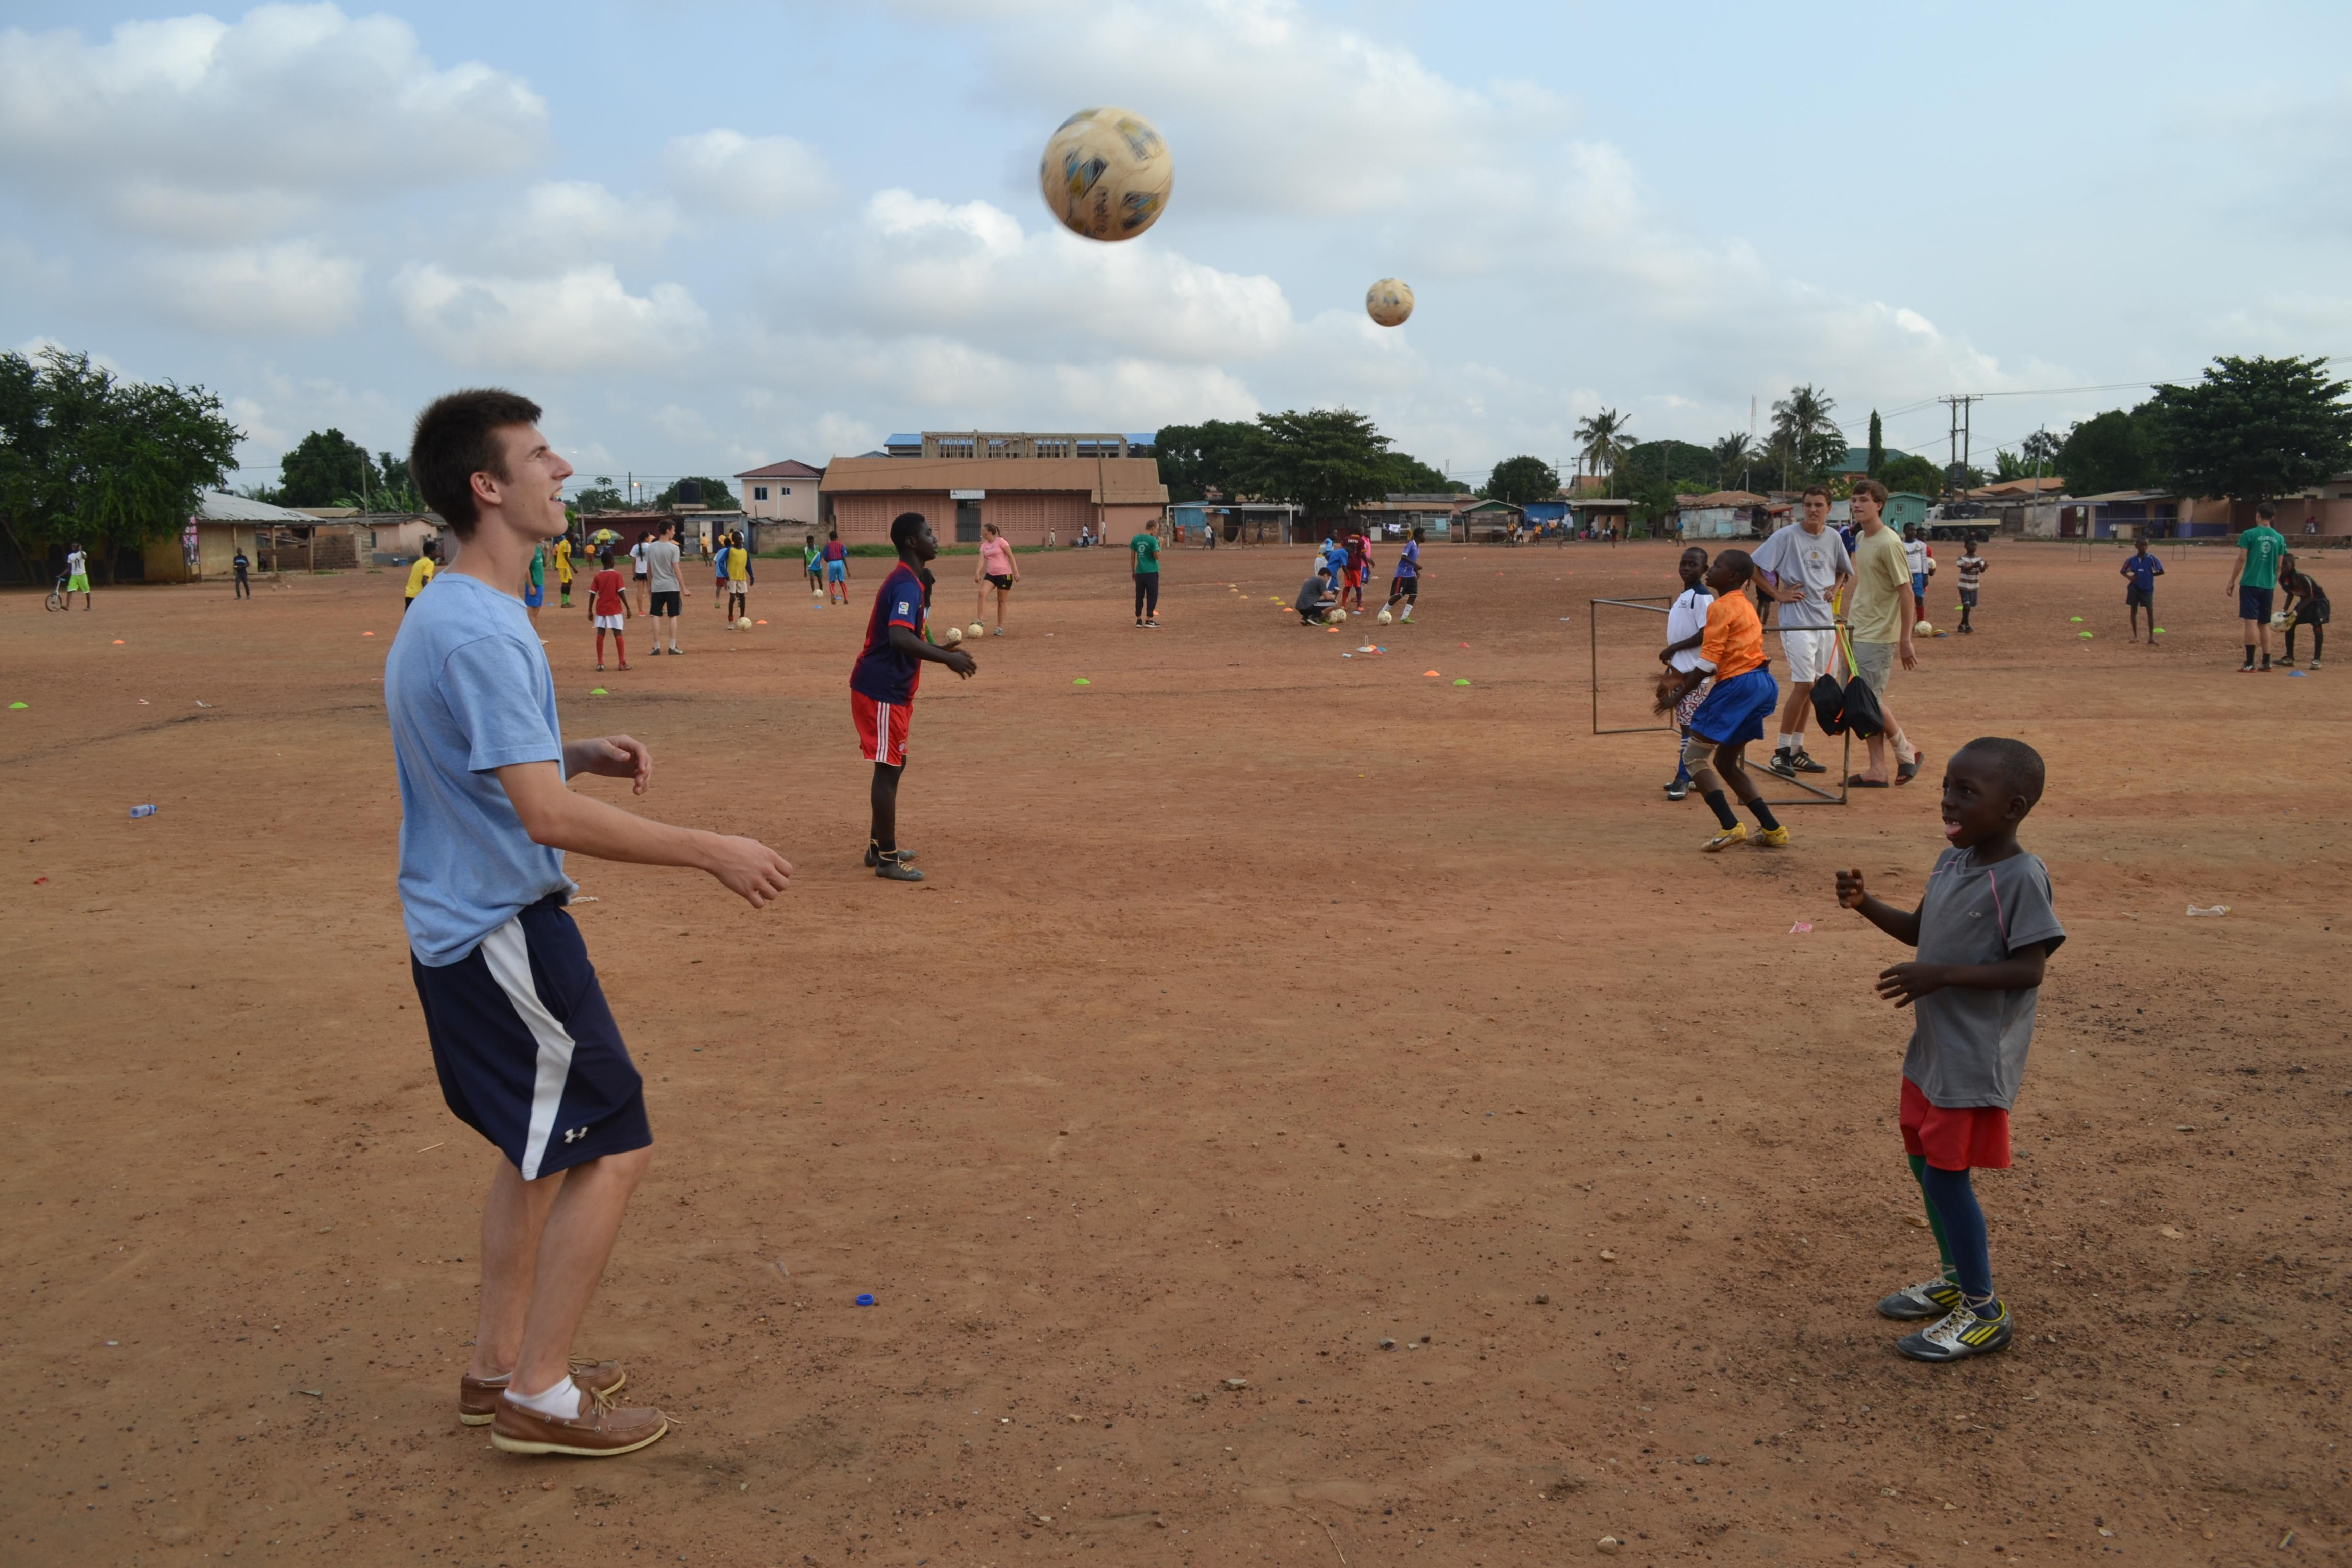 Projects Abroad volunteers taking part in football coaching for high school students in Ghana lead a ball skills practice session with a young team.